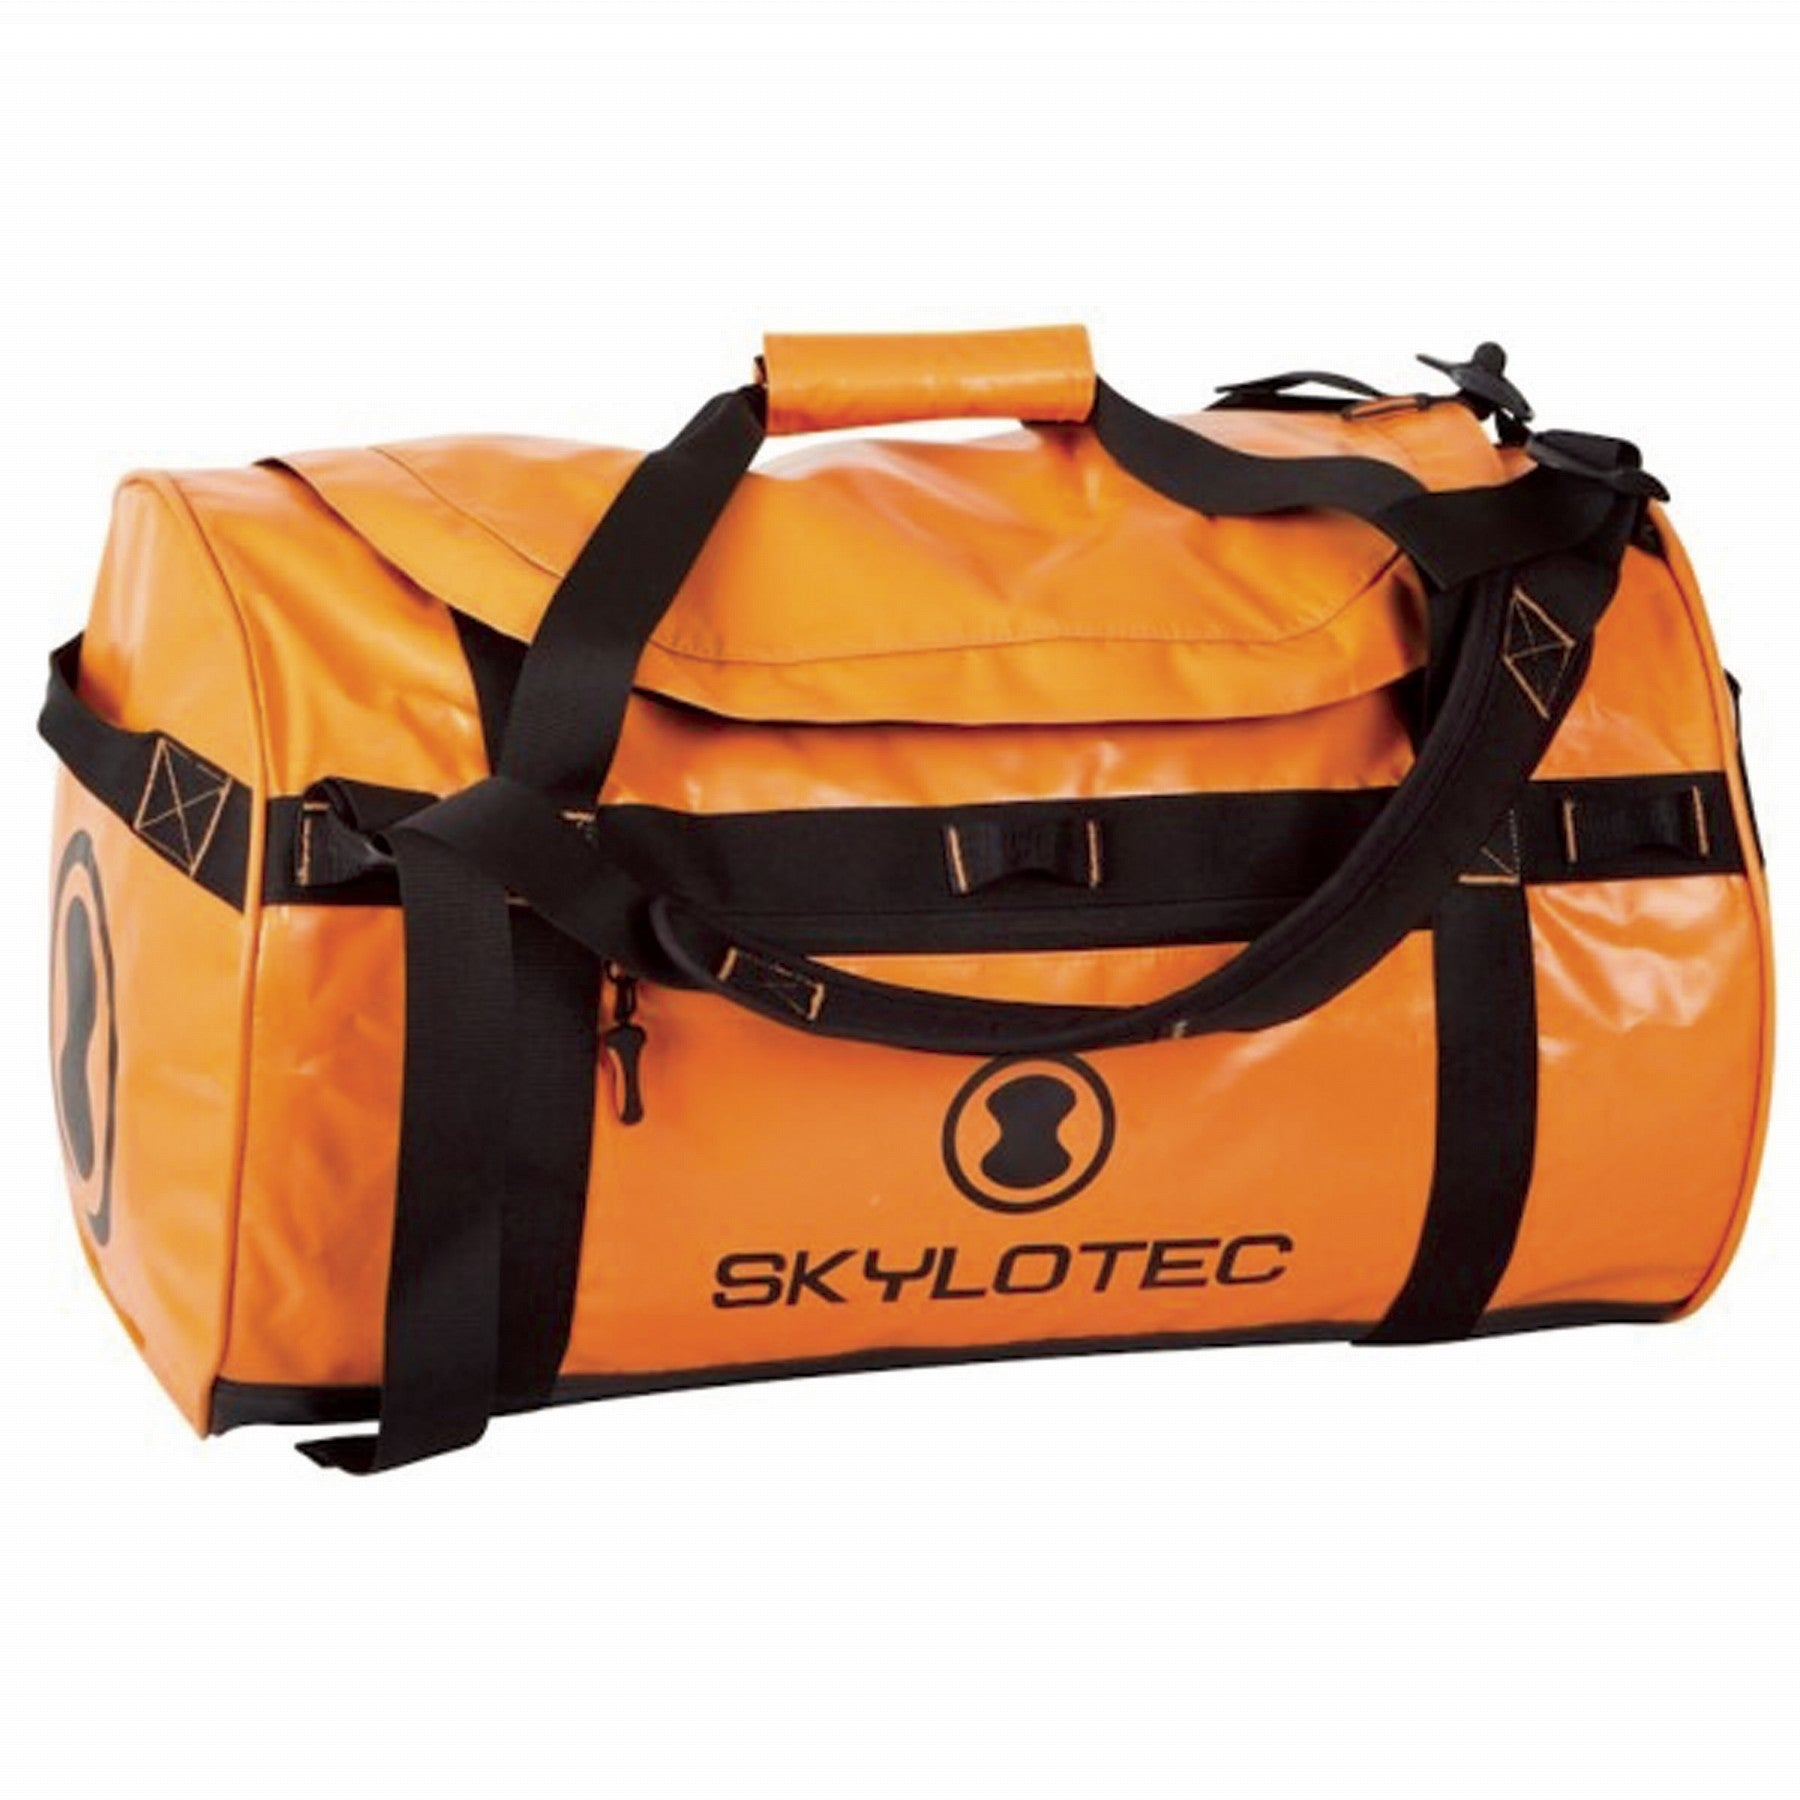 Skylotec Duffle Bag - ORANGE - Heavy duty water proof kit bag with shoulder straps. Large